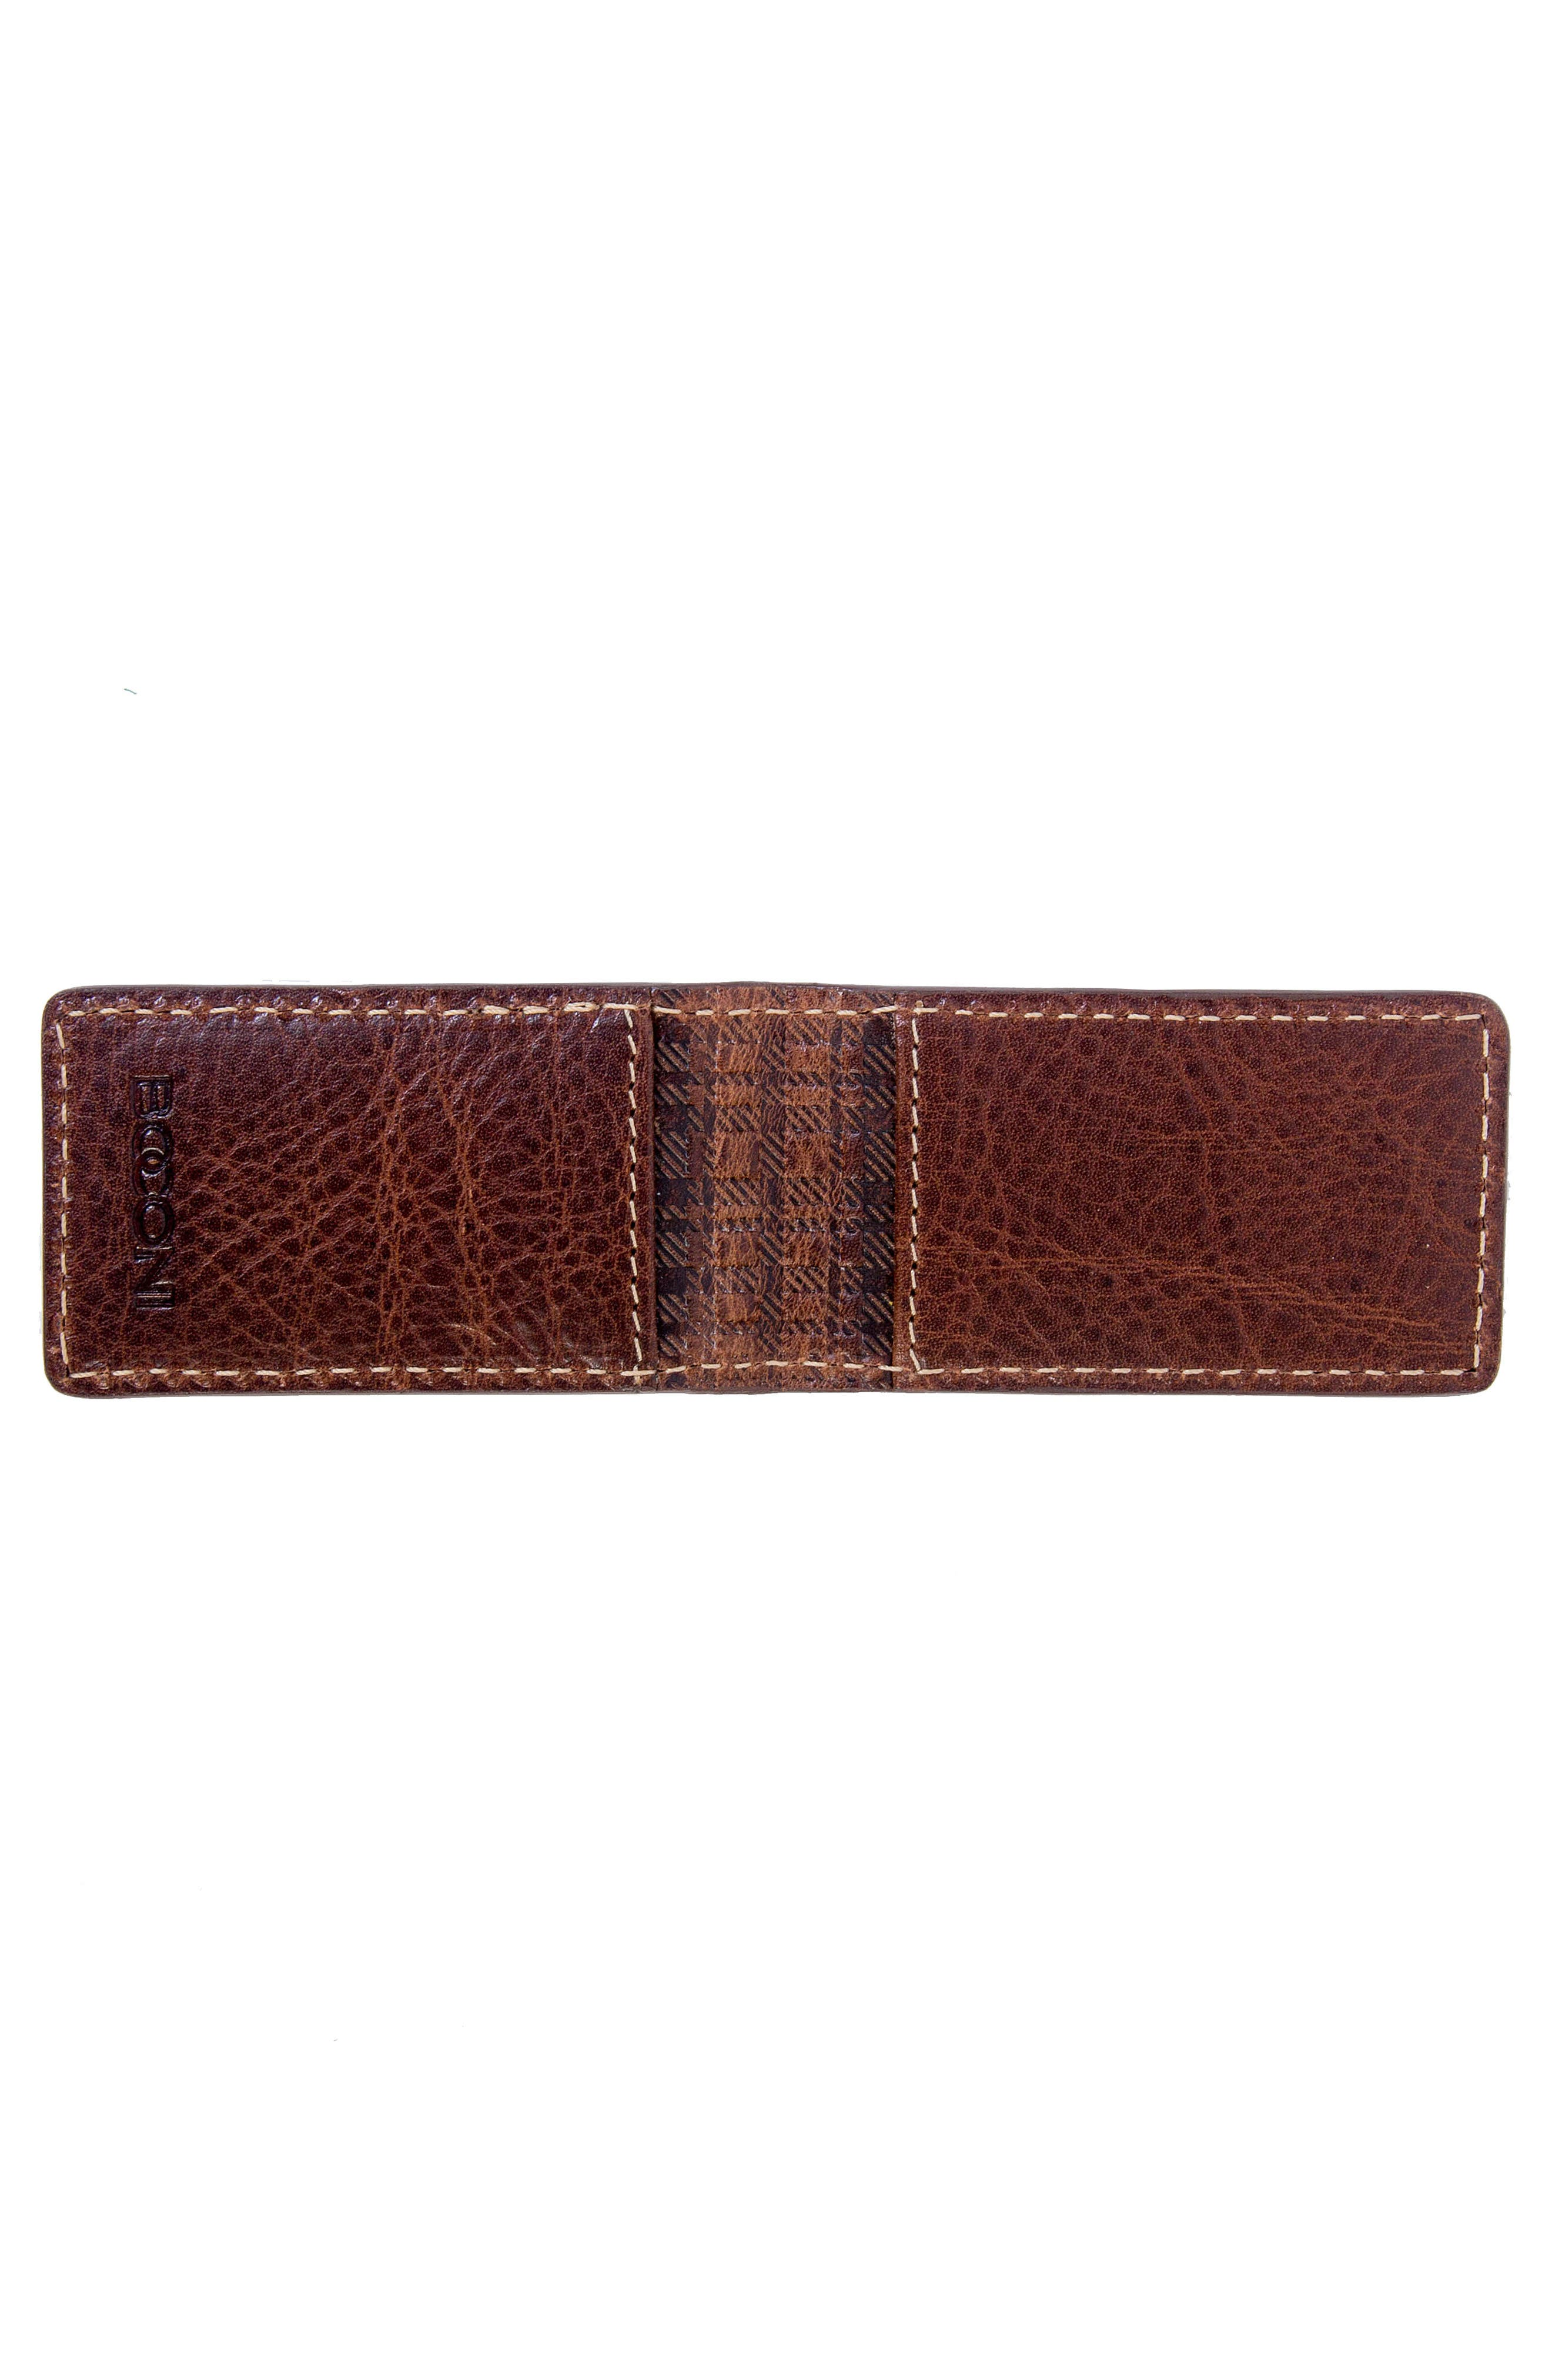 Caleb Magnetic Money Clip,                             Alternate thumbnail 3, color,                             Chestnut